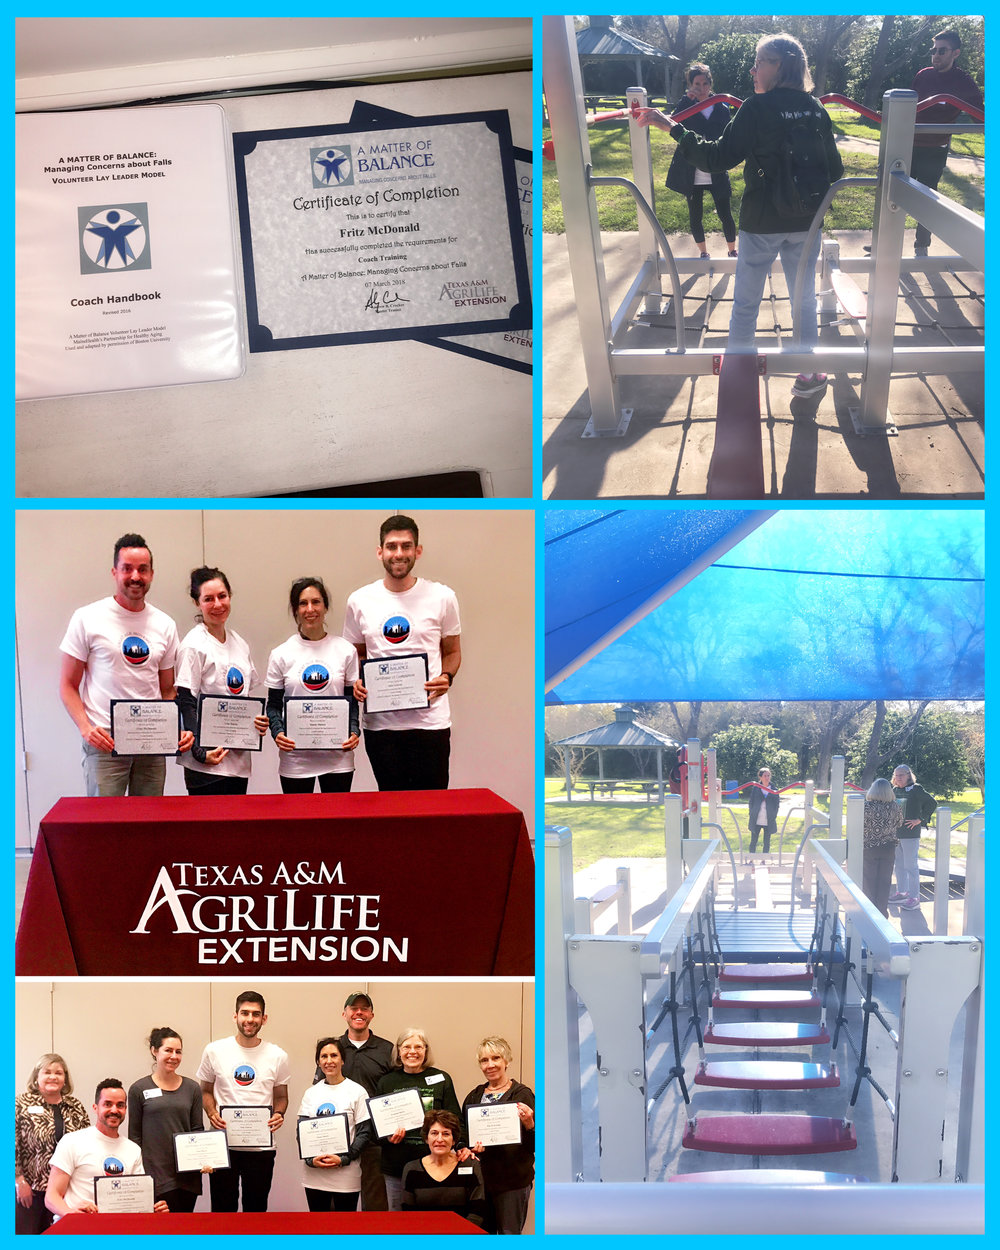 G.A.M. Volunteers  trained in March of 2018 to be coaches for Matter of Balance program through Texas A&M Agrilife Extension Services. Next step is to teach seniors. Once a senior completes the program he/she will be offered an opportunity to be a part of our pilot exercise program at Carbide Park's senior playground.